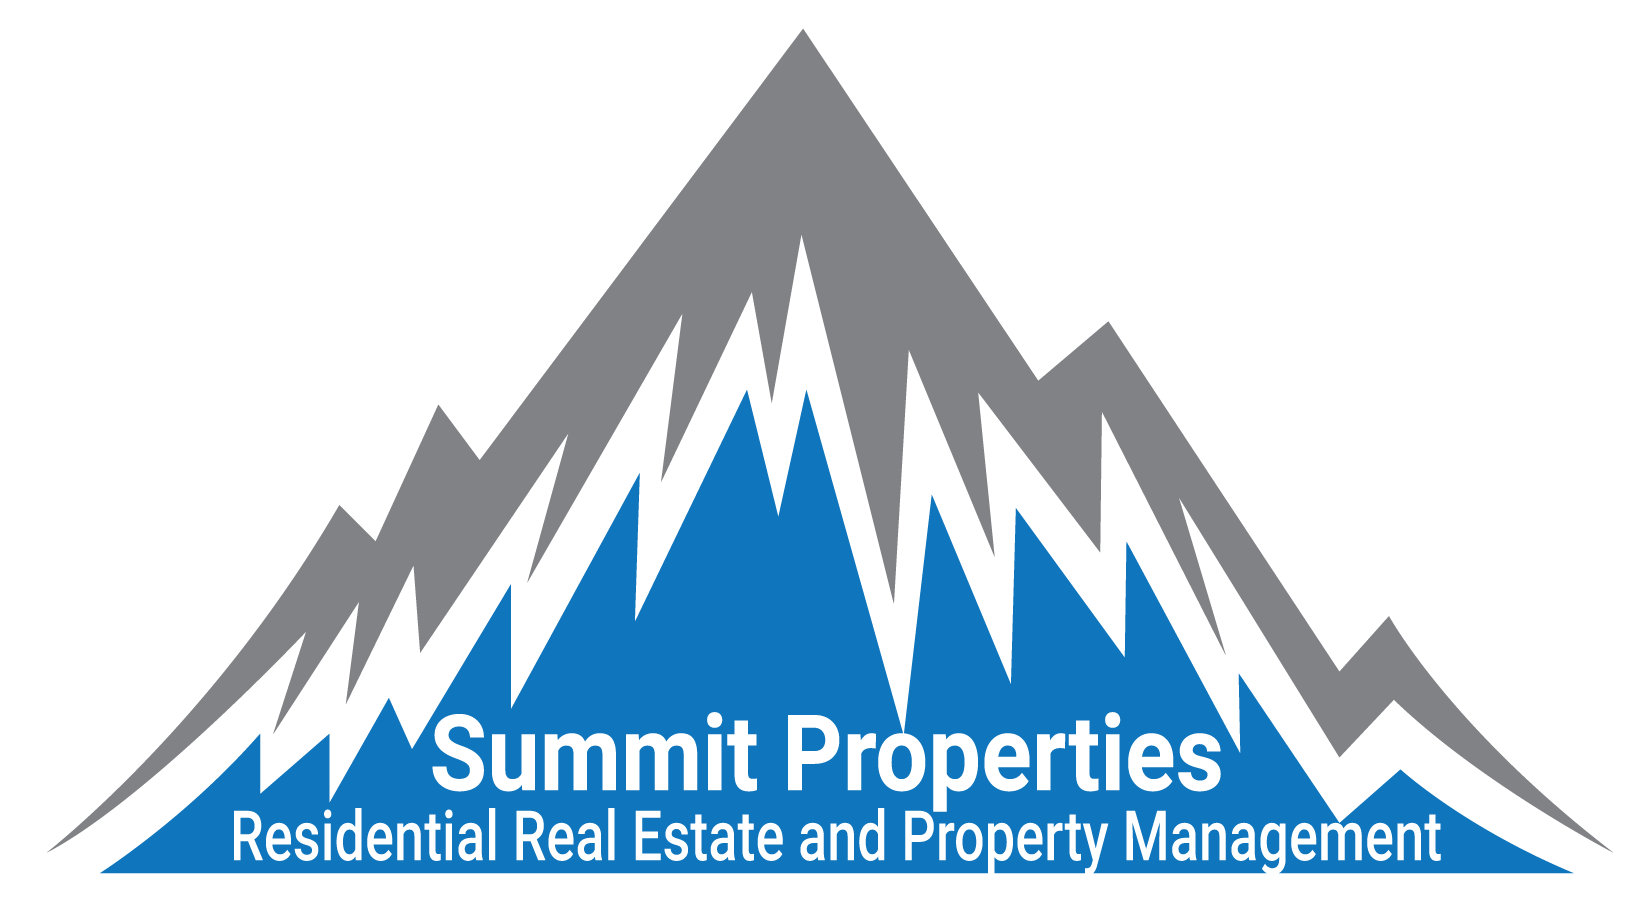 Summitproperties8 (4)